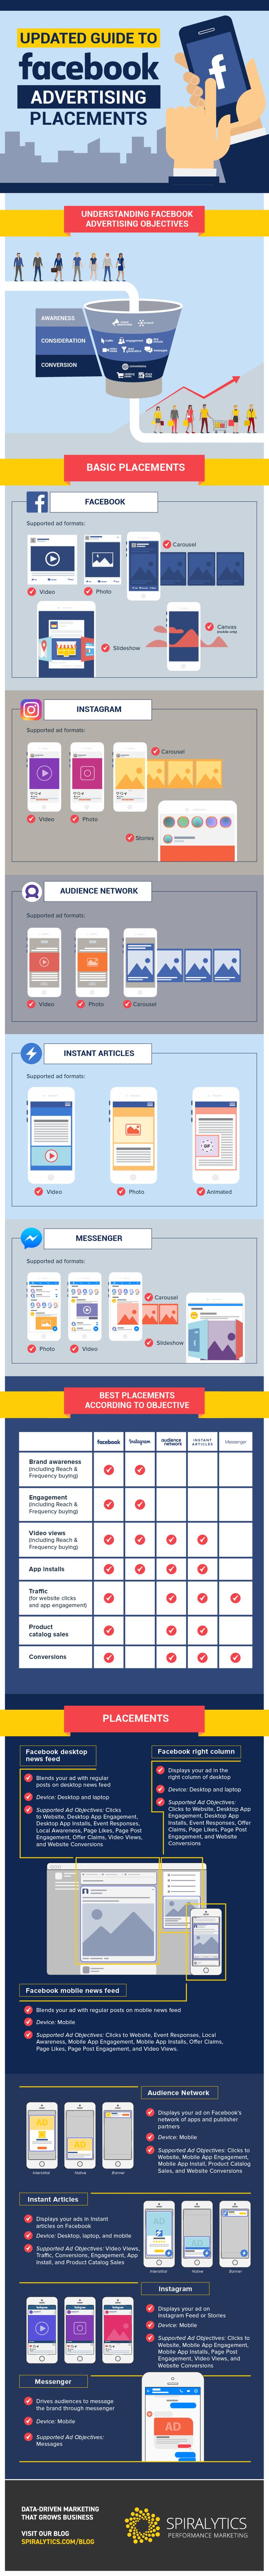 Updated Guide to Facebook Advertising Placements - #infographic